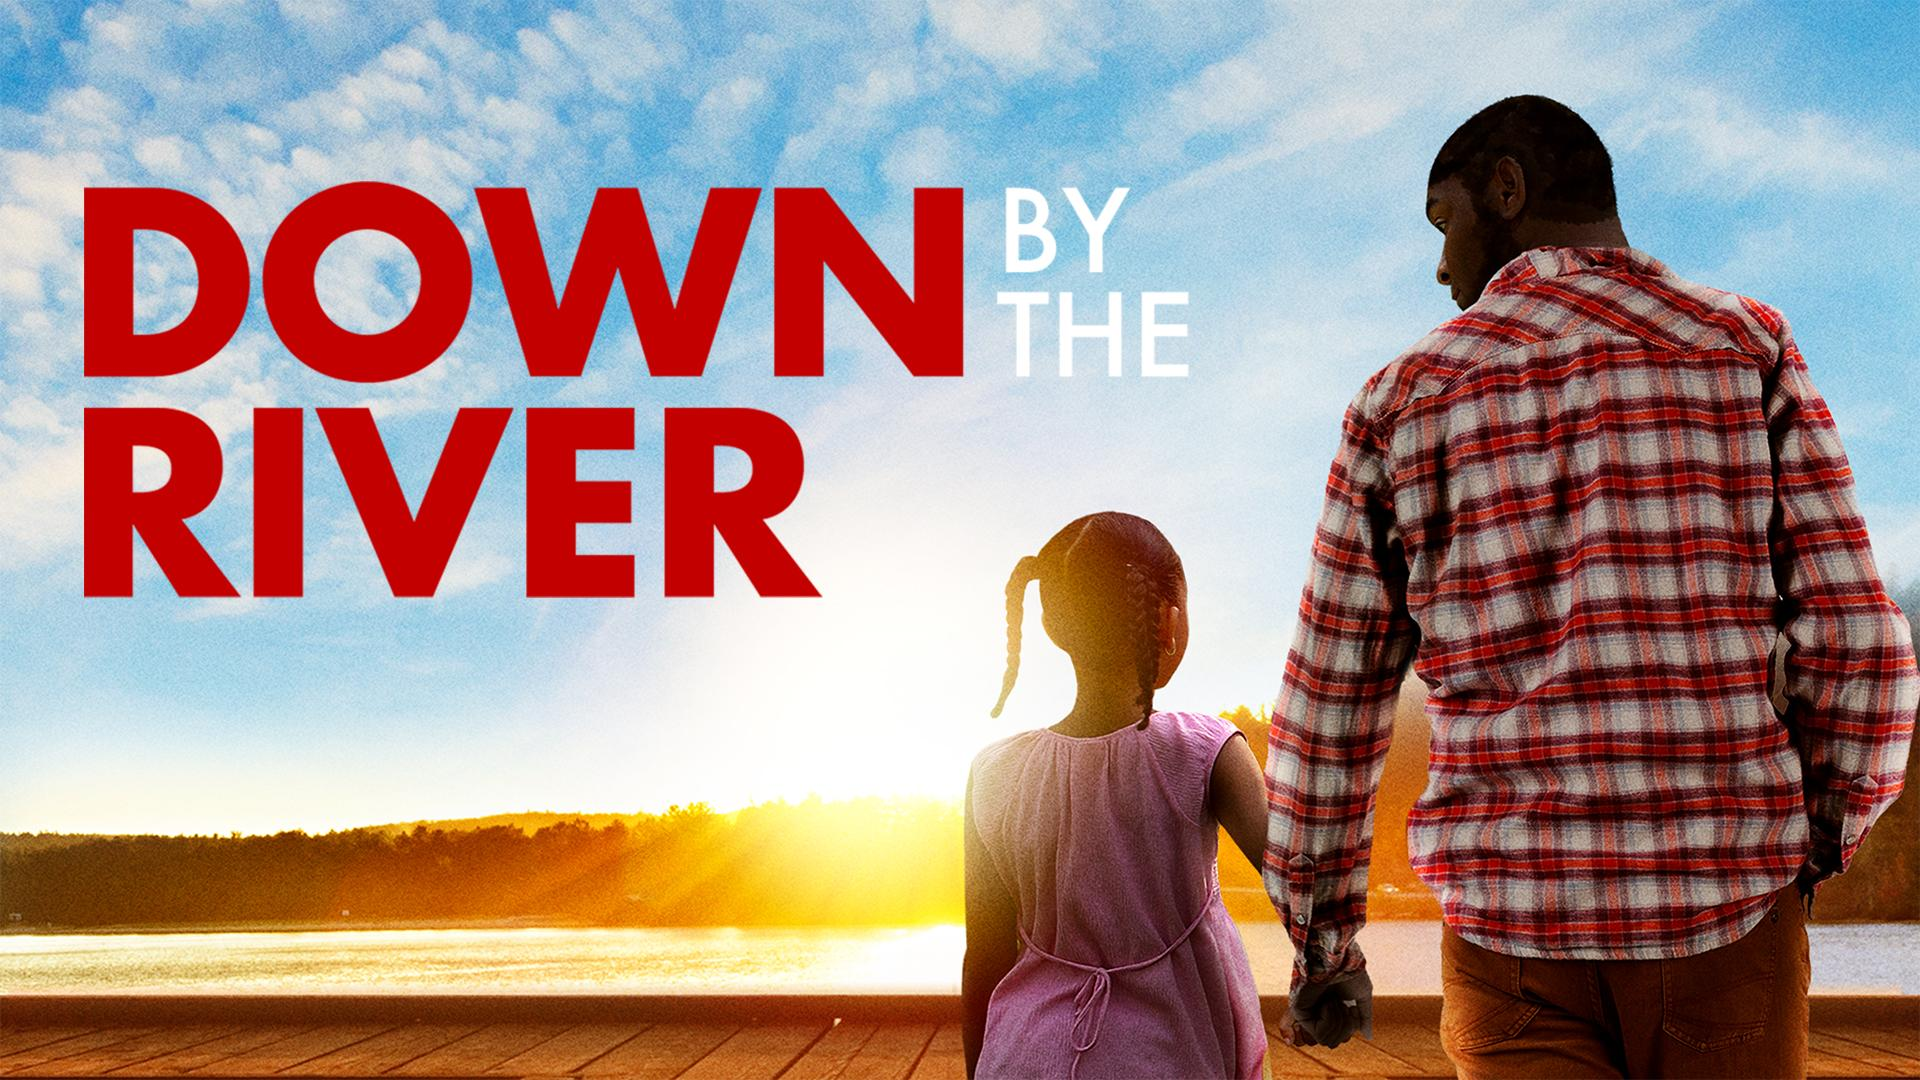 Down By The River - Family Films category image